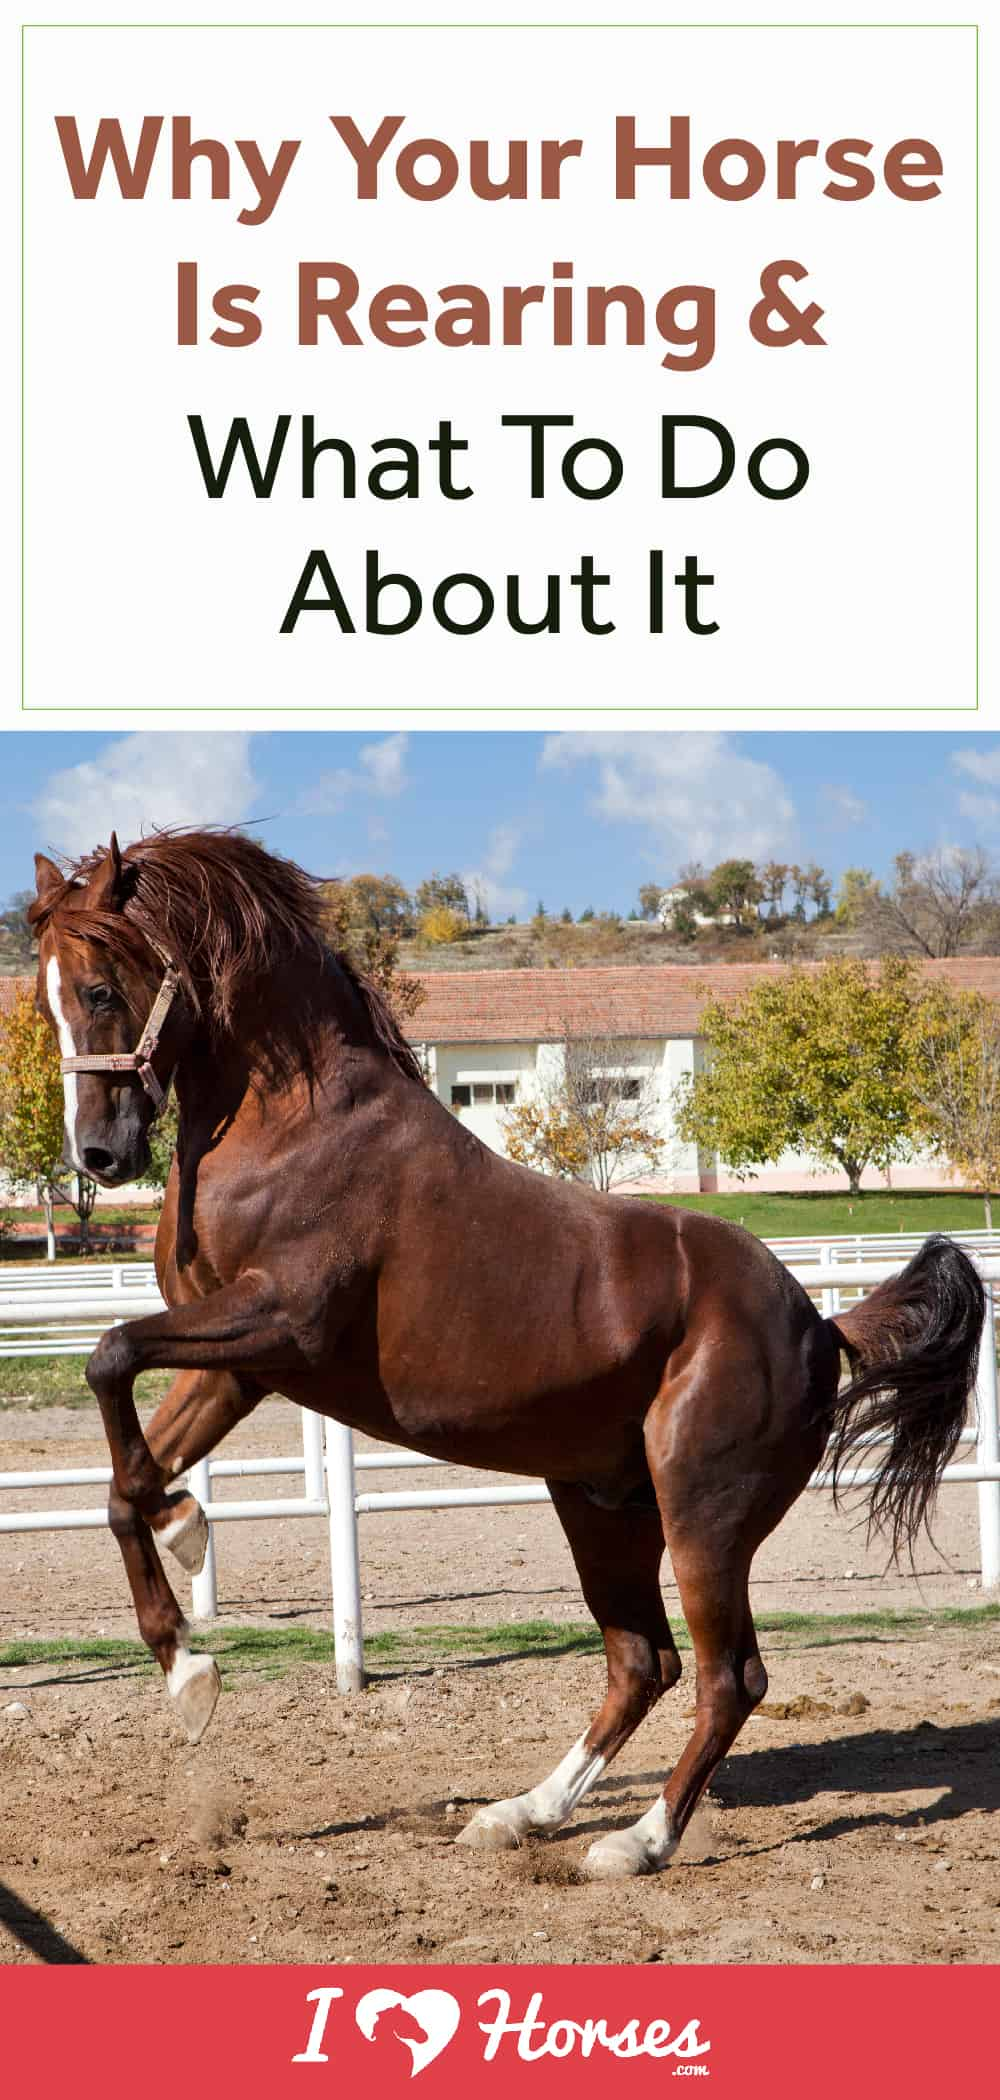 Why Is Your Horse Rearing